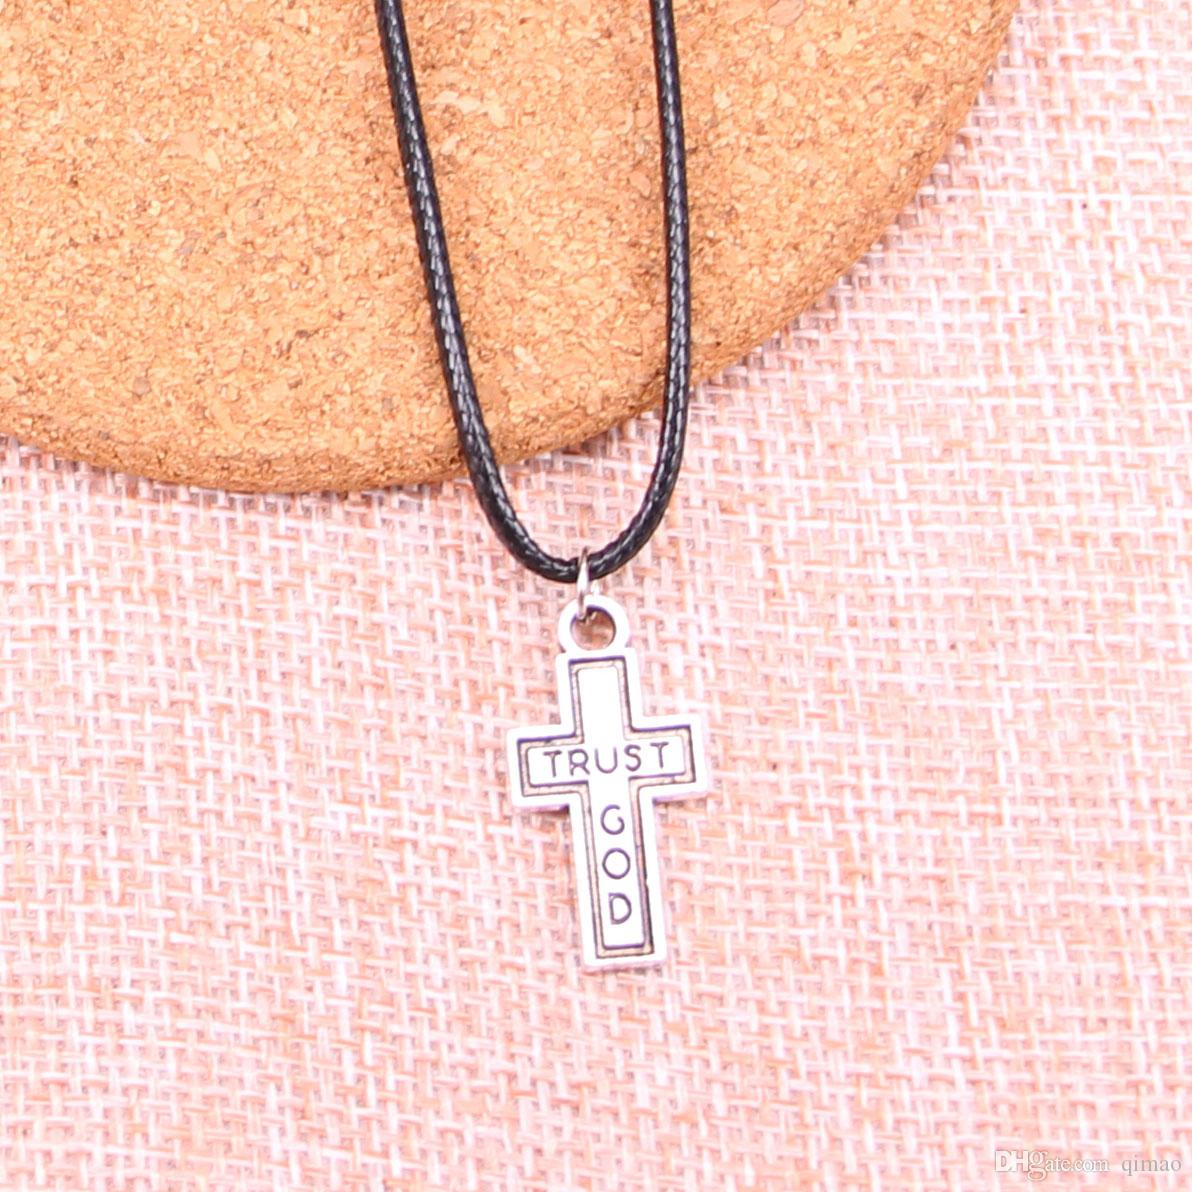 New Durable Black Faux Leather Antique Silver 24*13mm cross trust god Pendant Leather Chain Necklace Vintage Jewelry Dropshipping